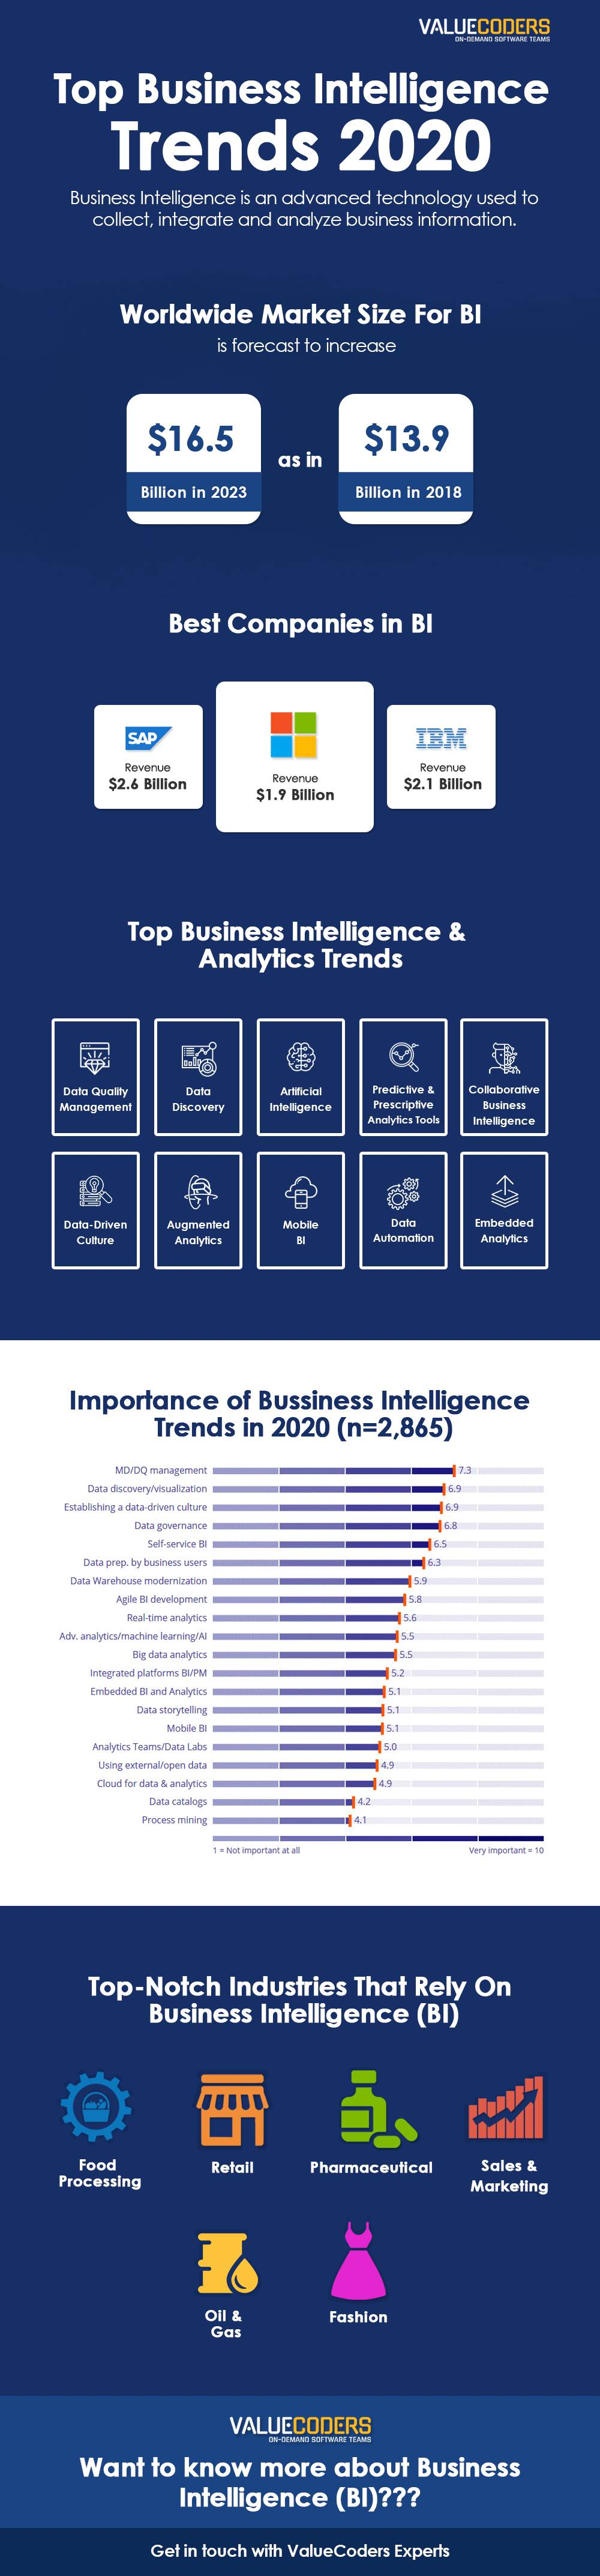 Why is Business Intelligence Important For Your Business?